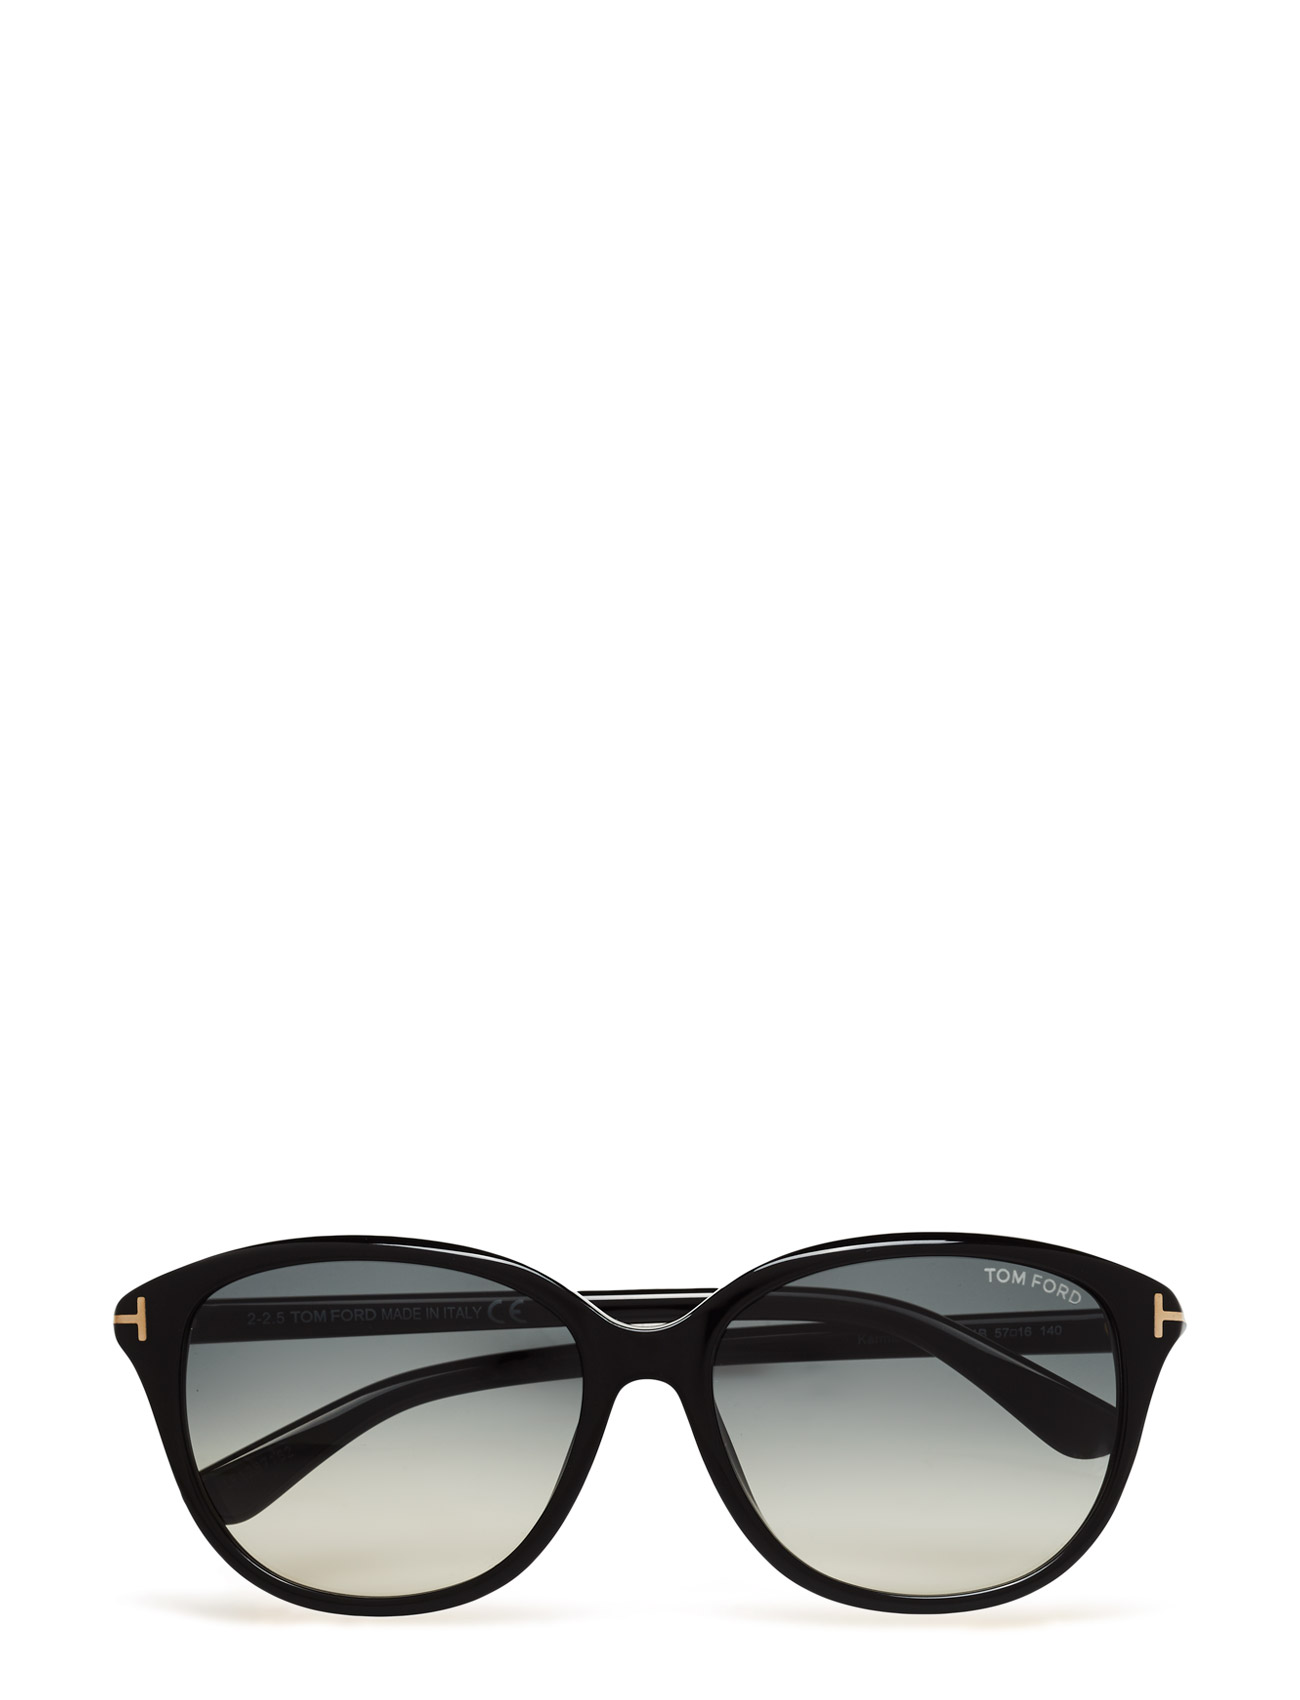 Tom Ford Karmen Tom Ford Sunglasses Solbriller til Kvinder i